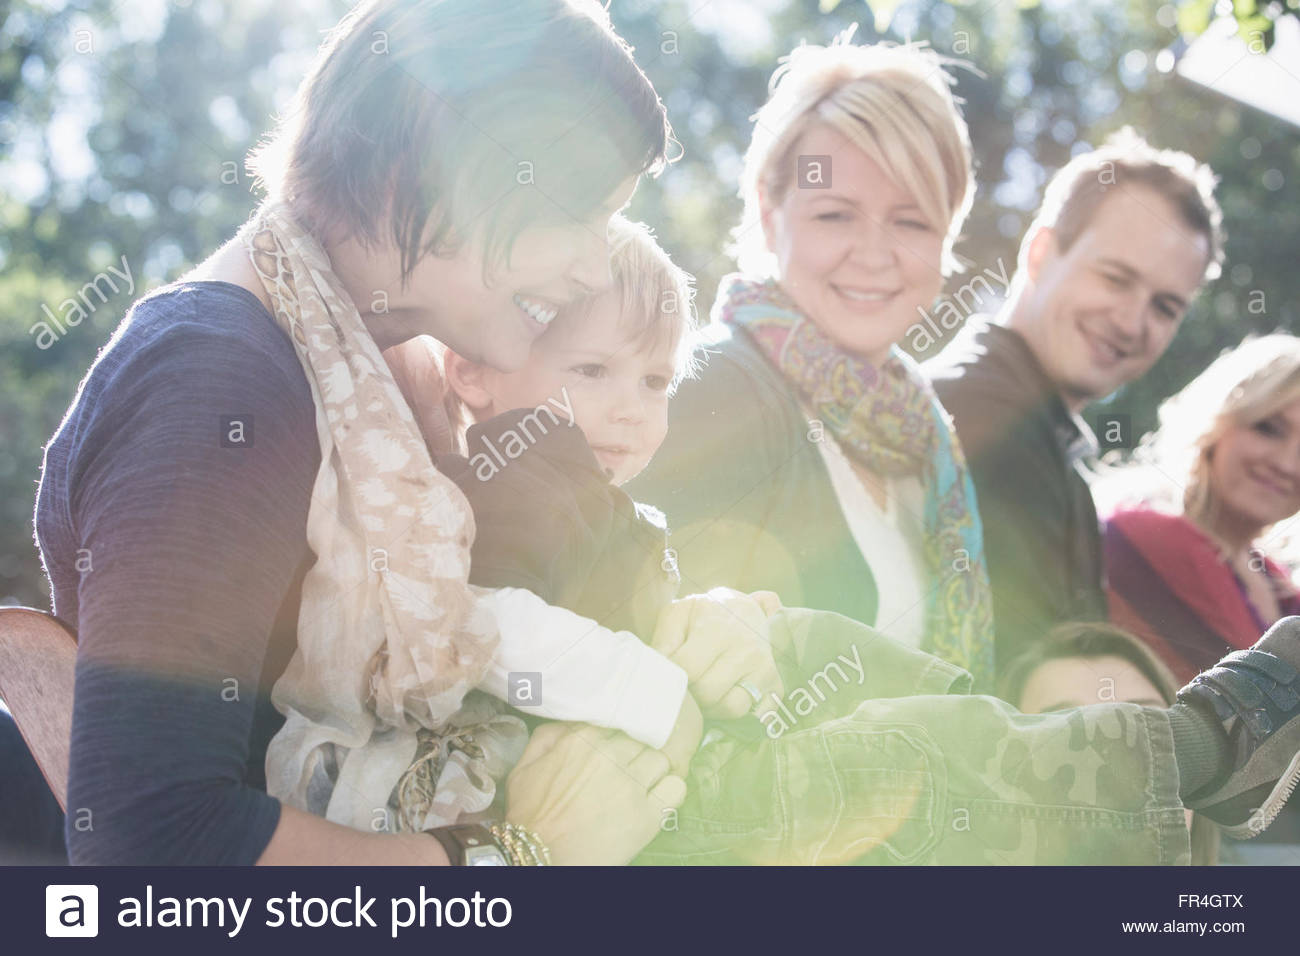 Mom holding two year old son at family reunion. - Stock Image